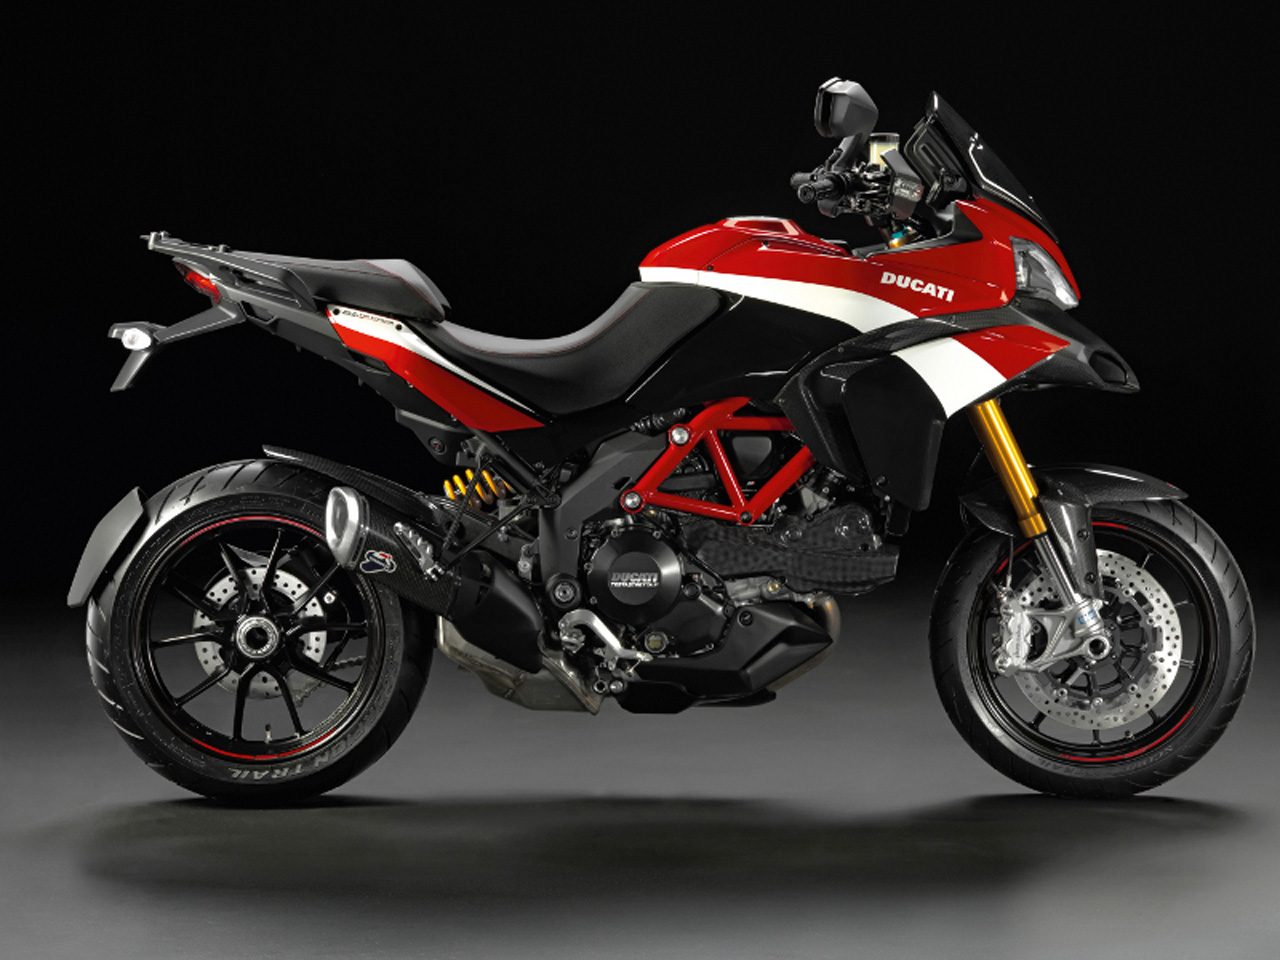 Ducati Multistrada 1200 S Pikes Peak Edition 2013 images #80027